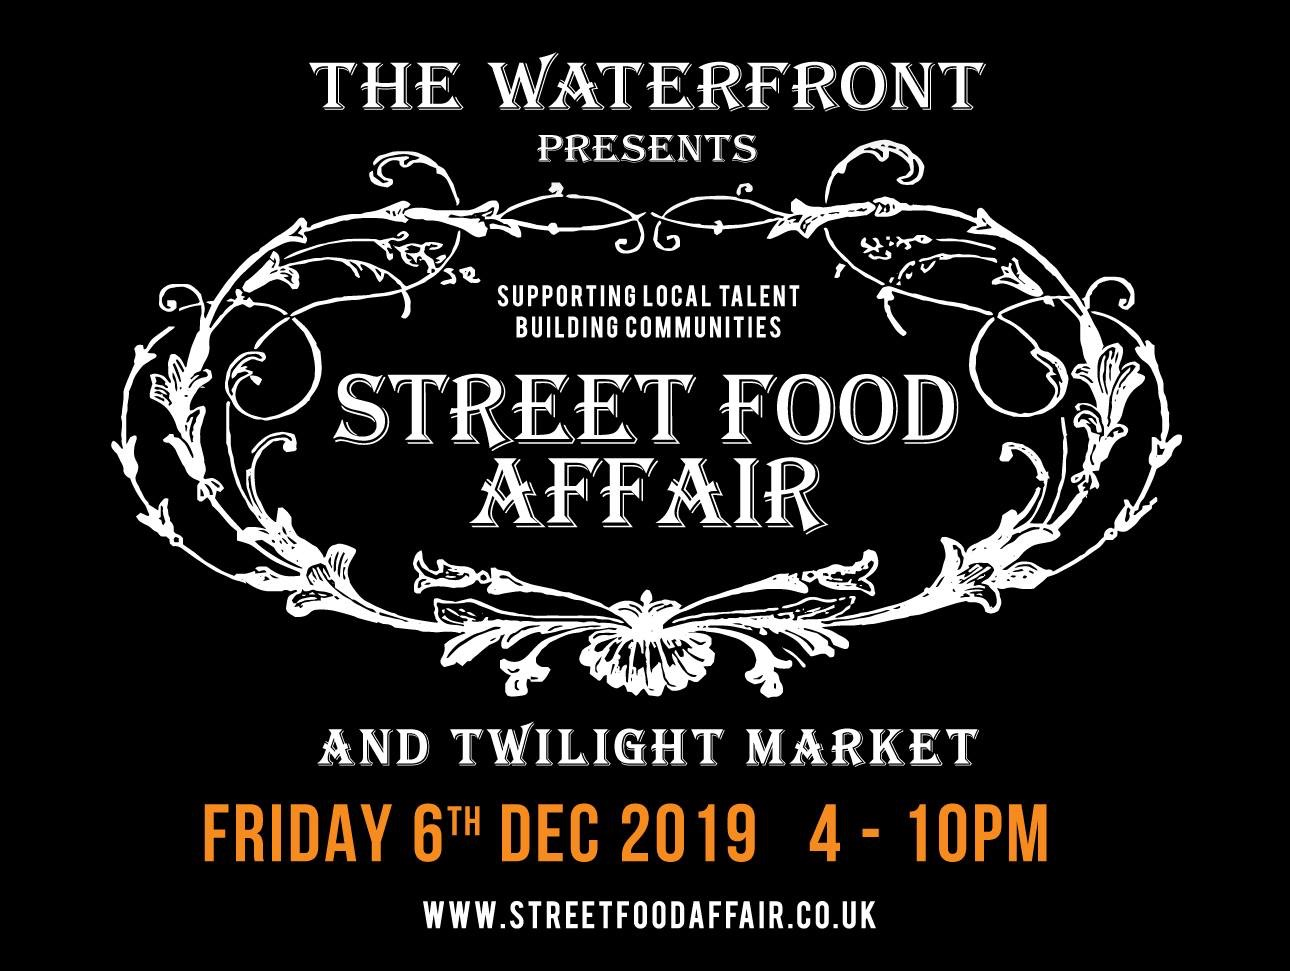 Waterfront Street Food Affair & Festive Twilight Market